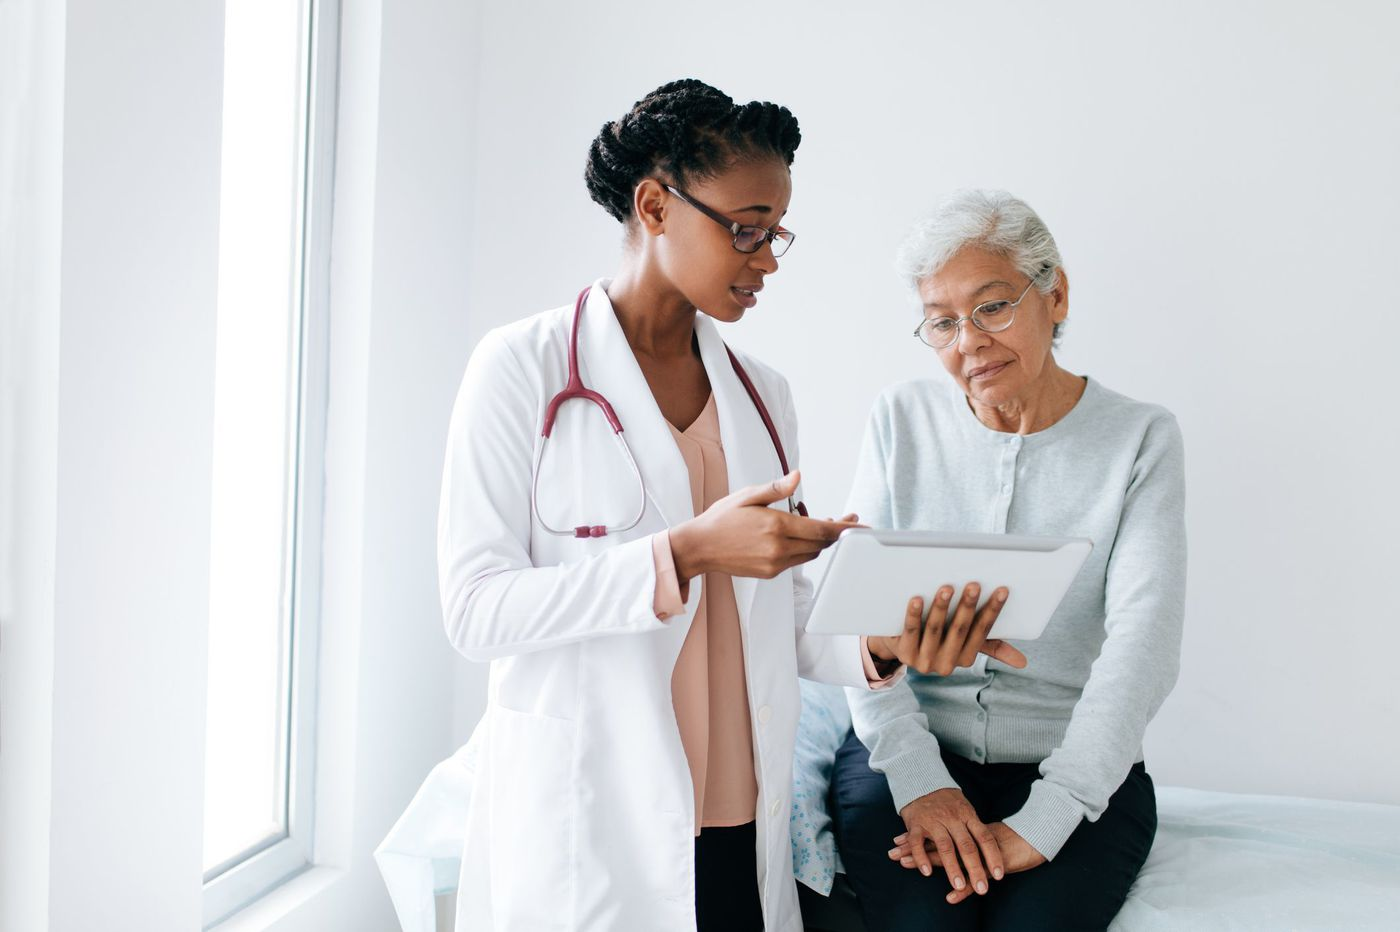 Physicians of color are far too rare. This Jefferson study highlights one potential reason.